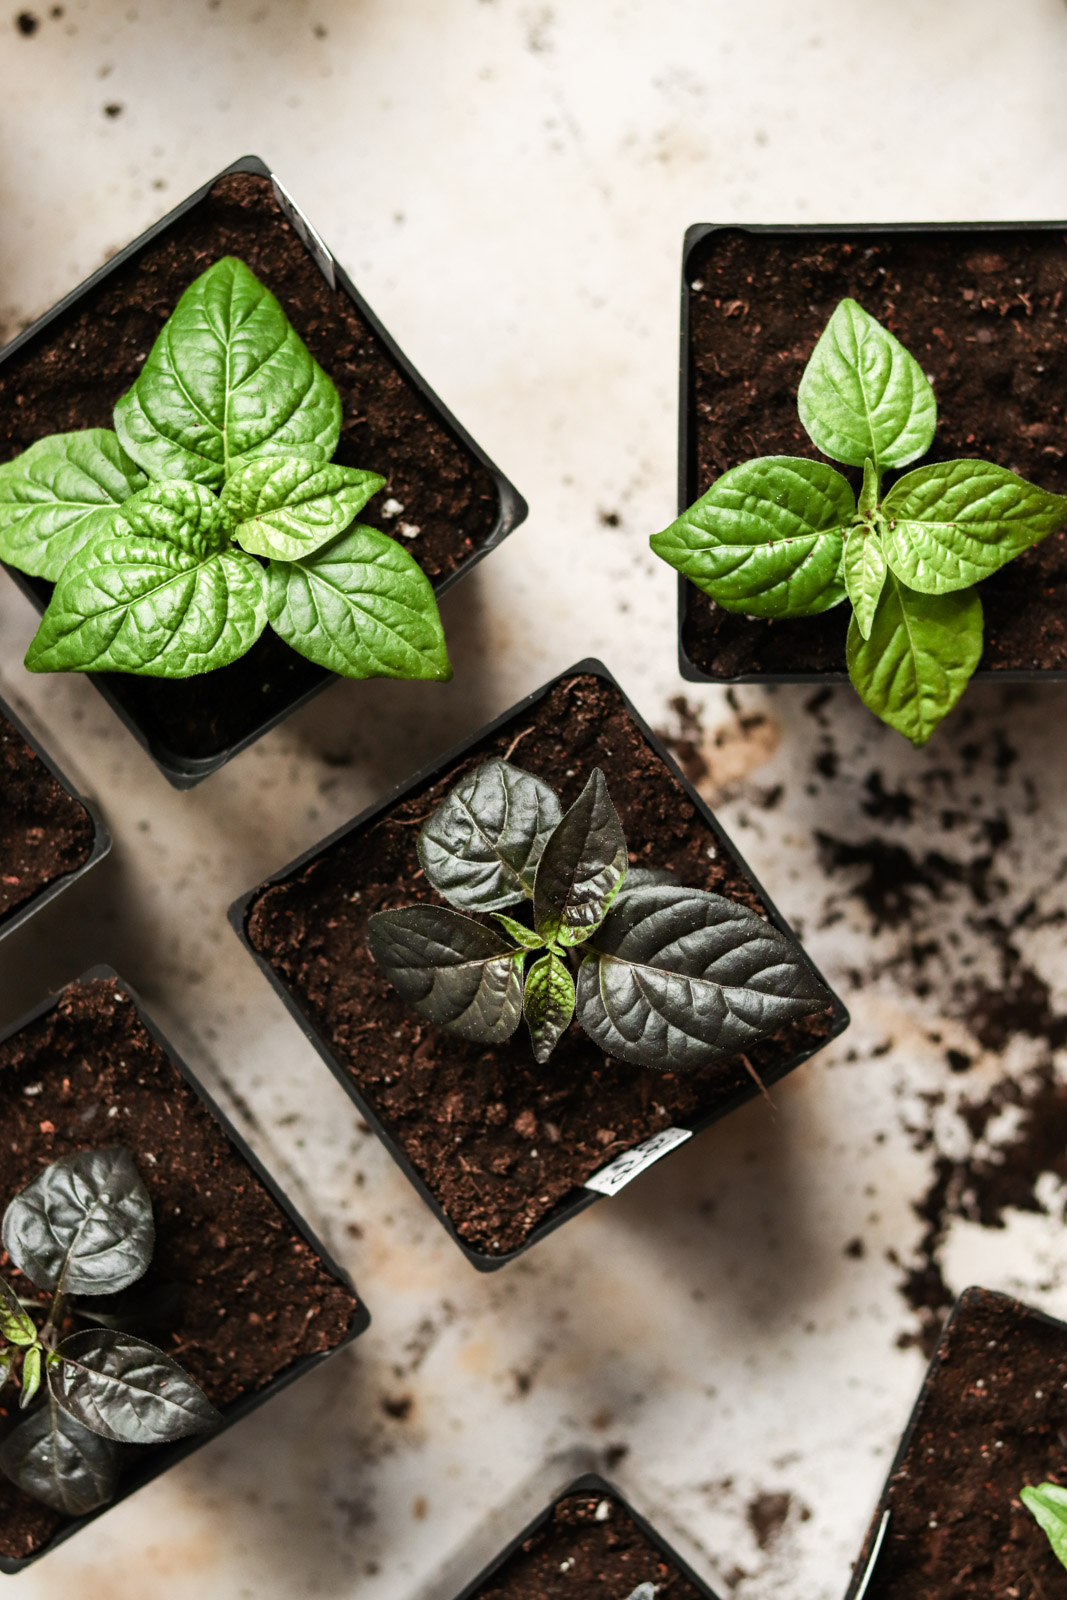 Several pots of young pepper seedlings, some with green leaves and some with purple.